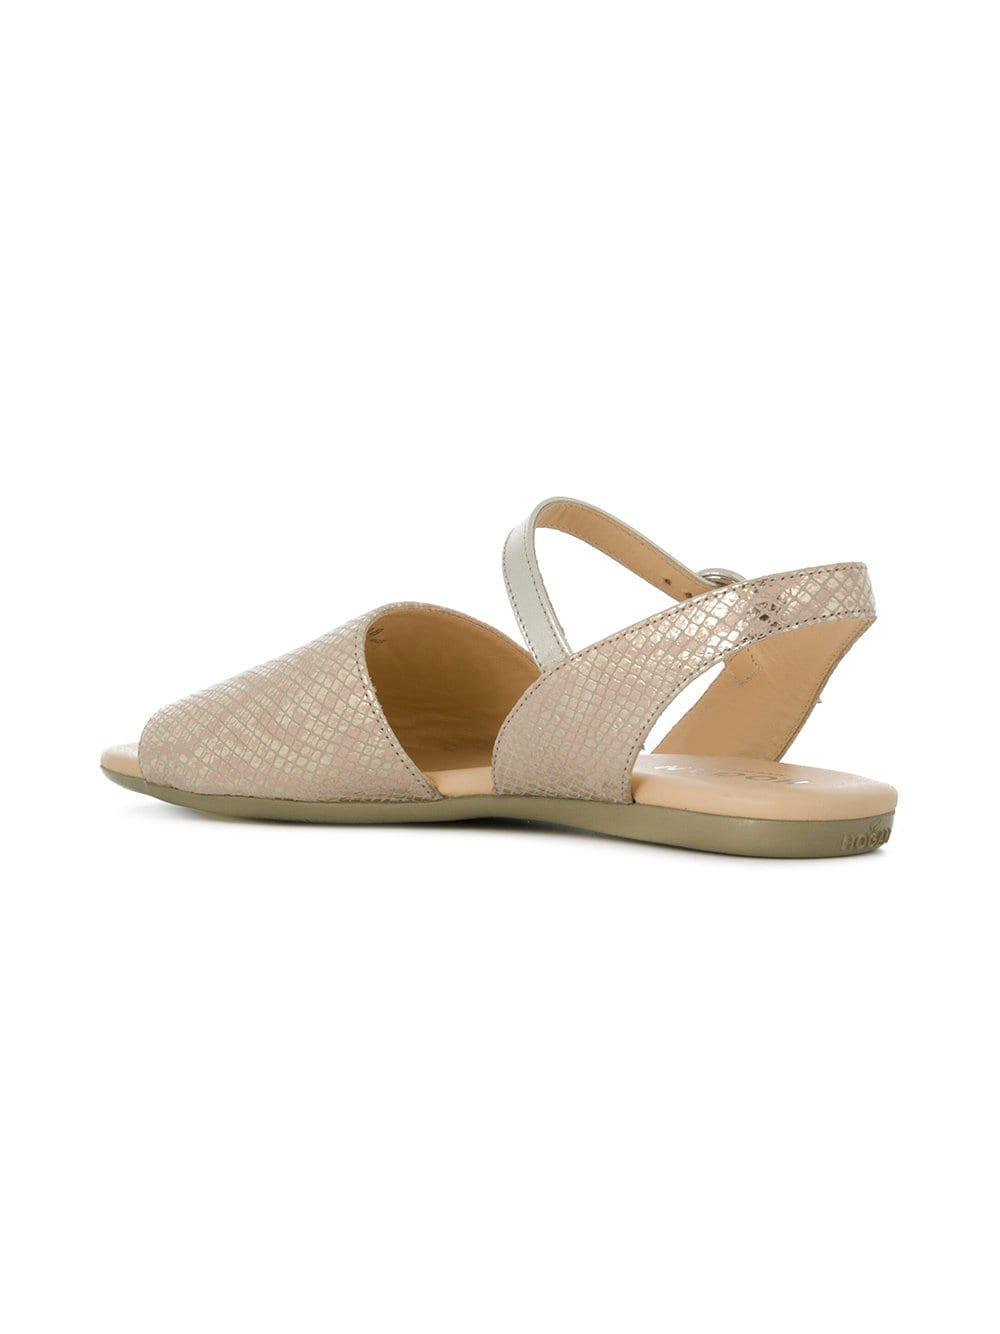 33e6241afb0 Hogan Open Toe Slingback Sandals - Lyst